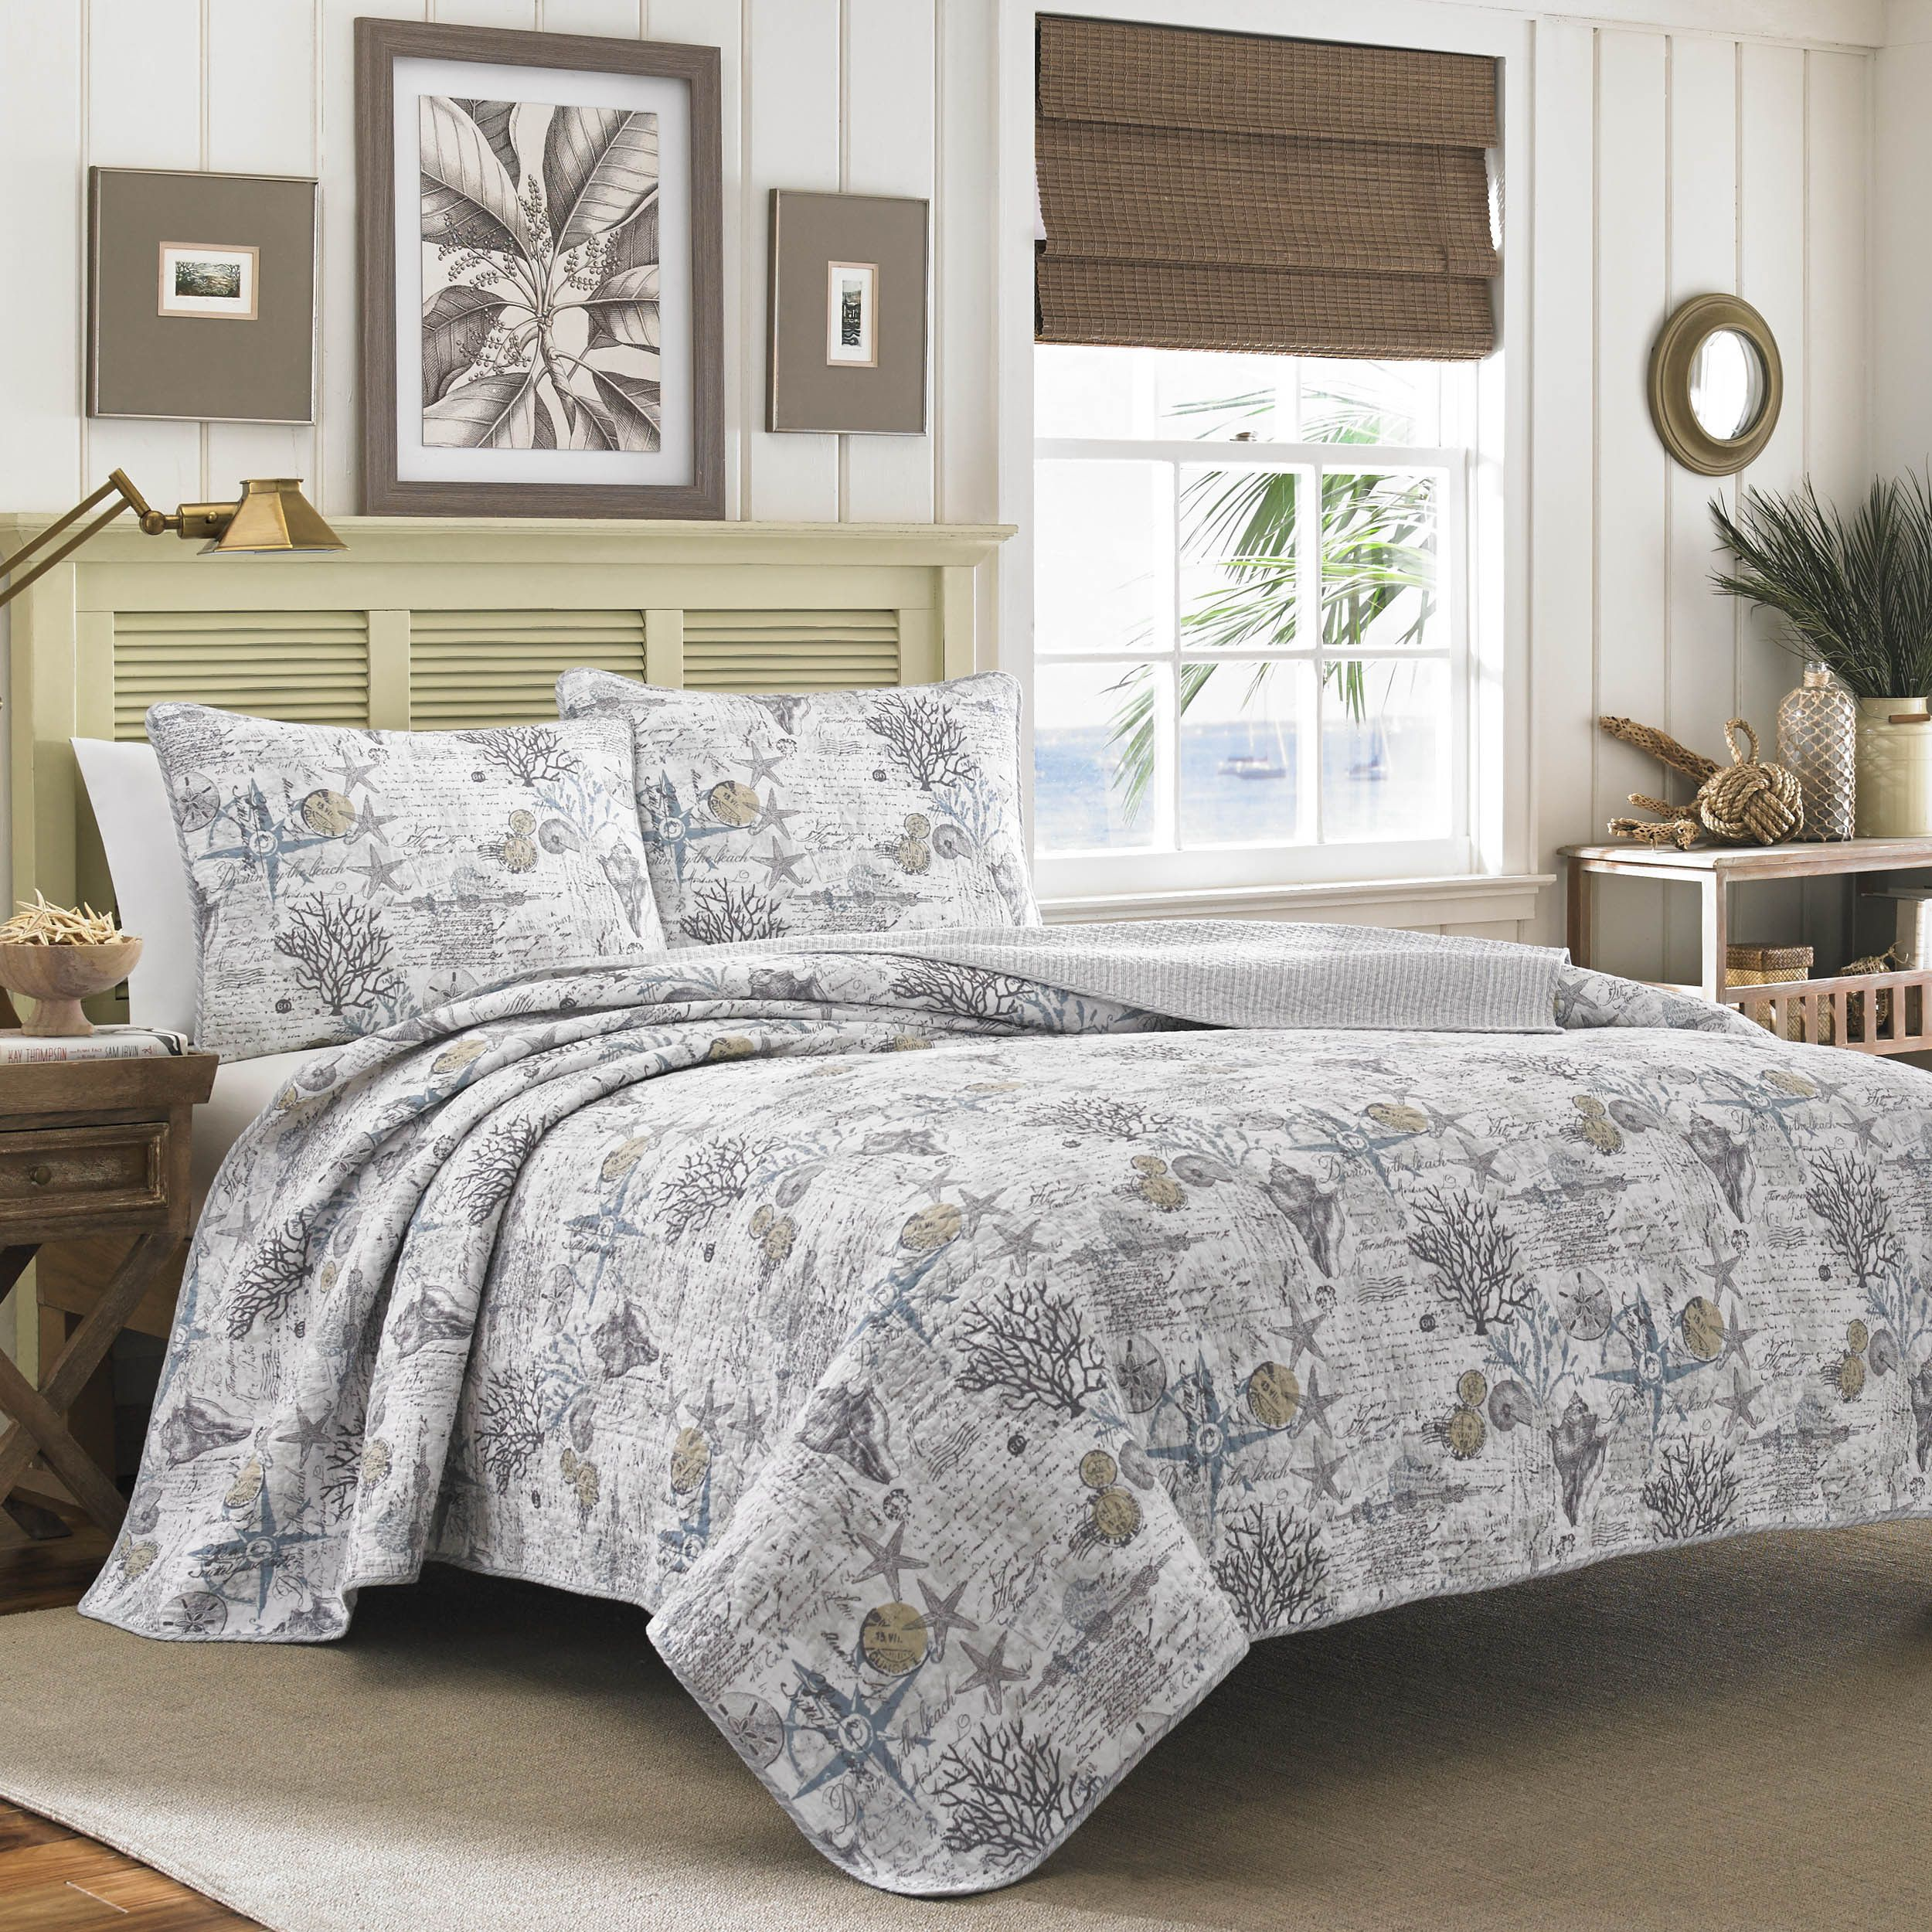 piece comforter bedding pdx tommy bliss quilt bahama bed beach wayfair set reviews reversible home bath king